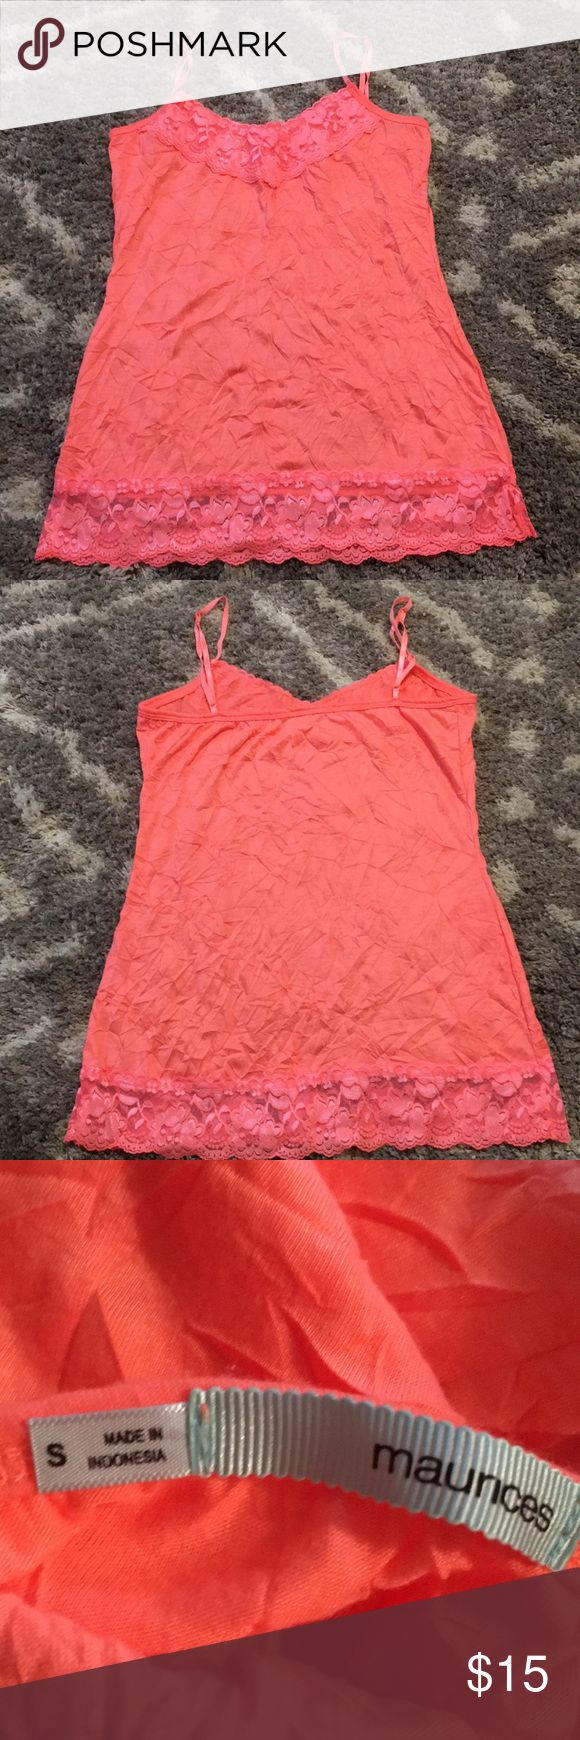 Coral Maurices Cami Tank S Maurice's Size Small Neon Color Cami/Lace Tank.  Great preowned condition. Any questions please ask. Thank you 😊 Maurices Tops Camisoles